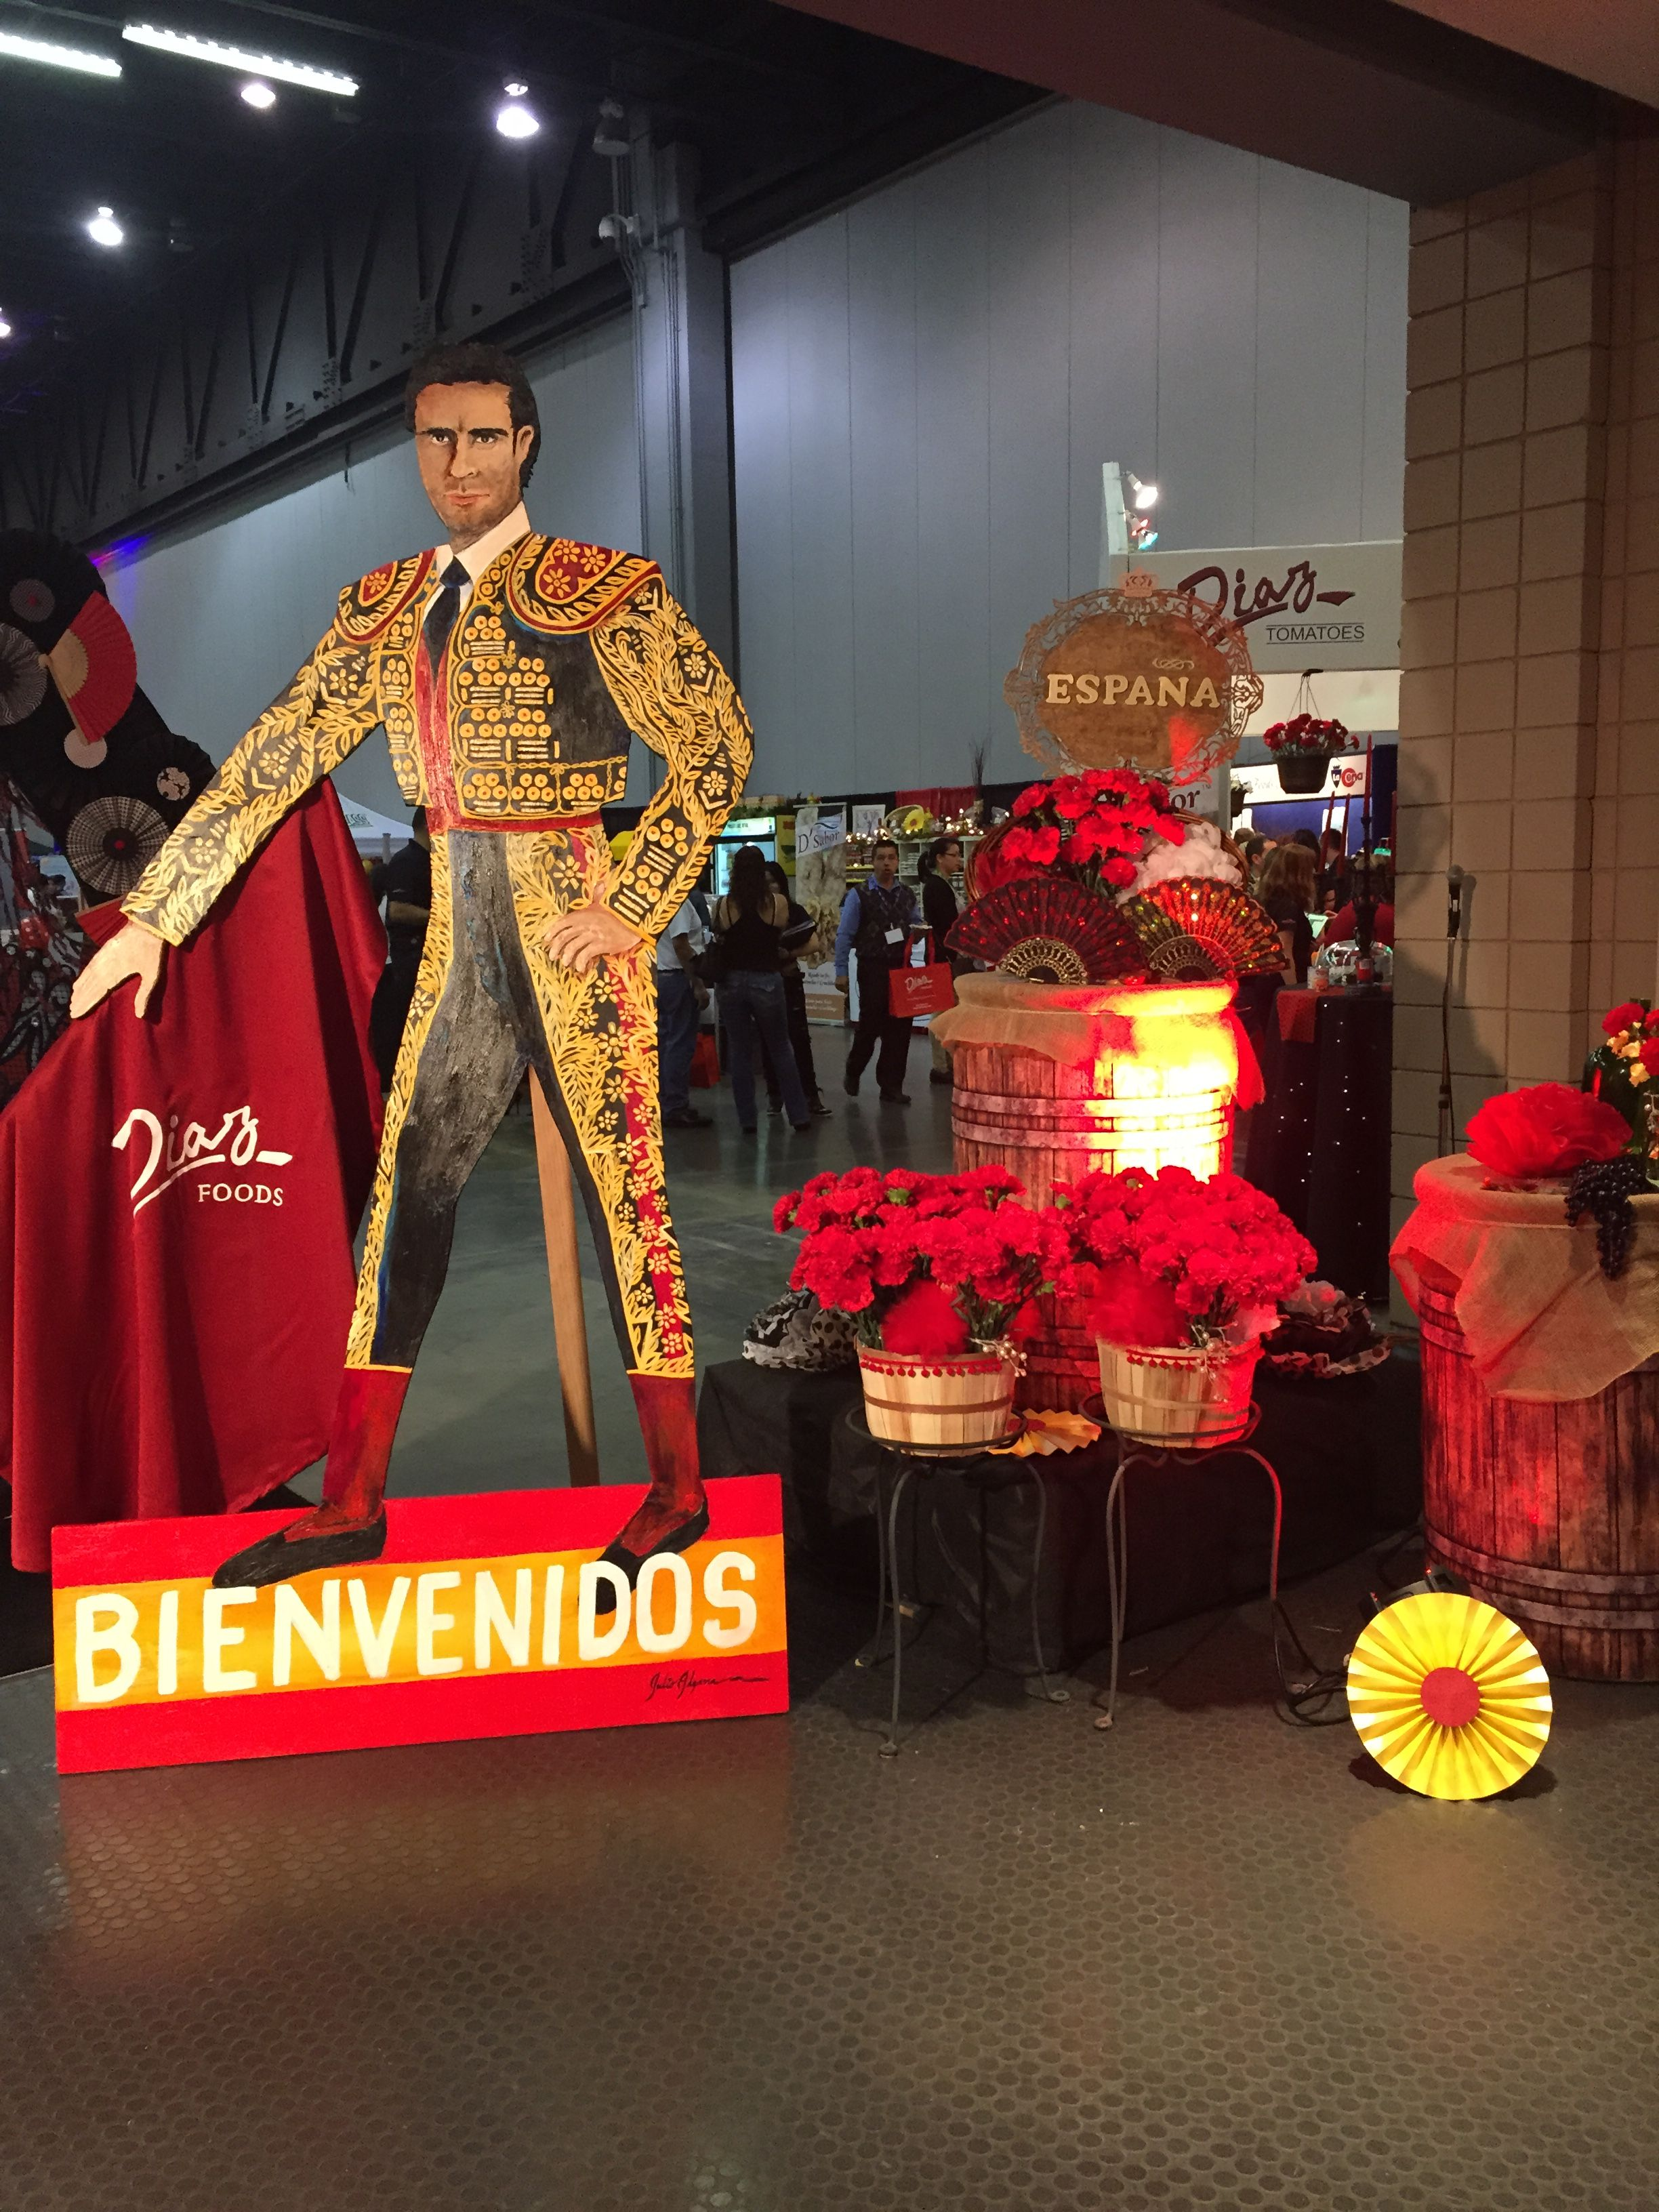 Spanish Themed Decorations For A Trade Show At Cobb Galleria Centre In Atlanta Spain Theme Decoration Tr Flamenco Party Spanish Party Spanish Themed Party